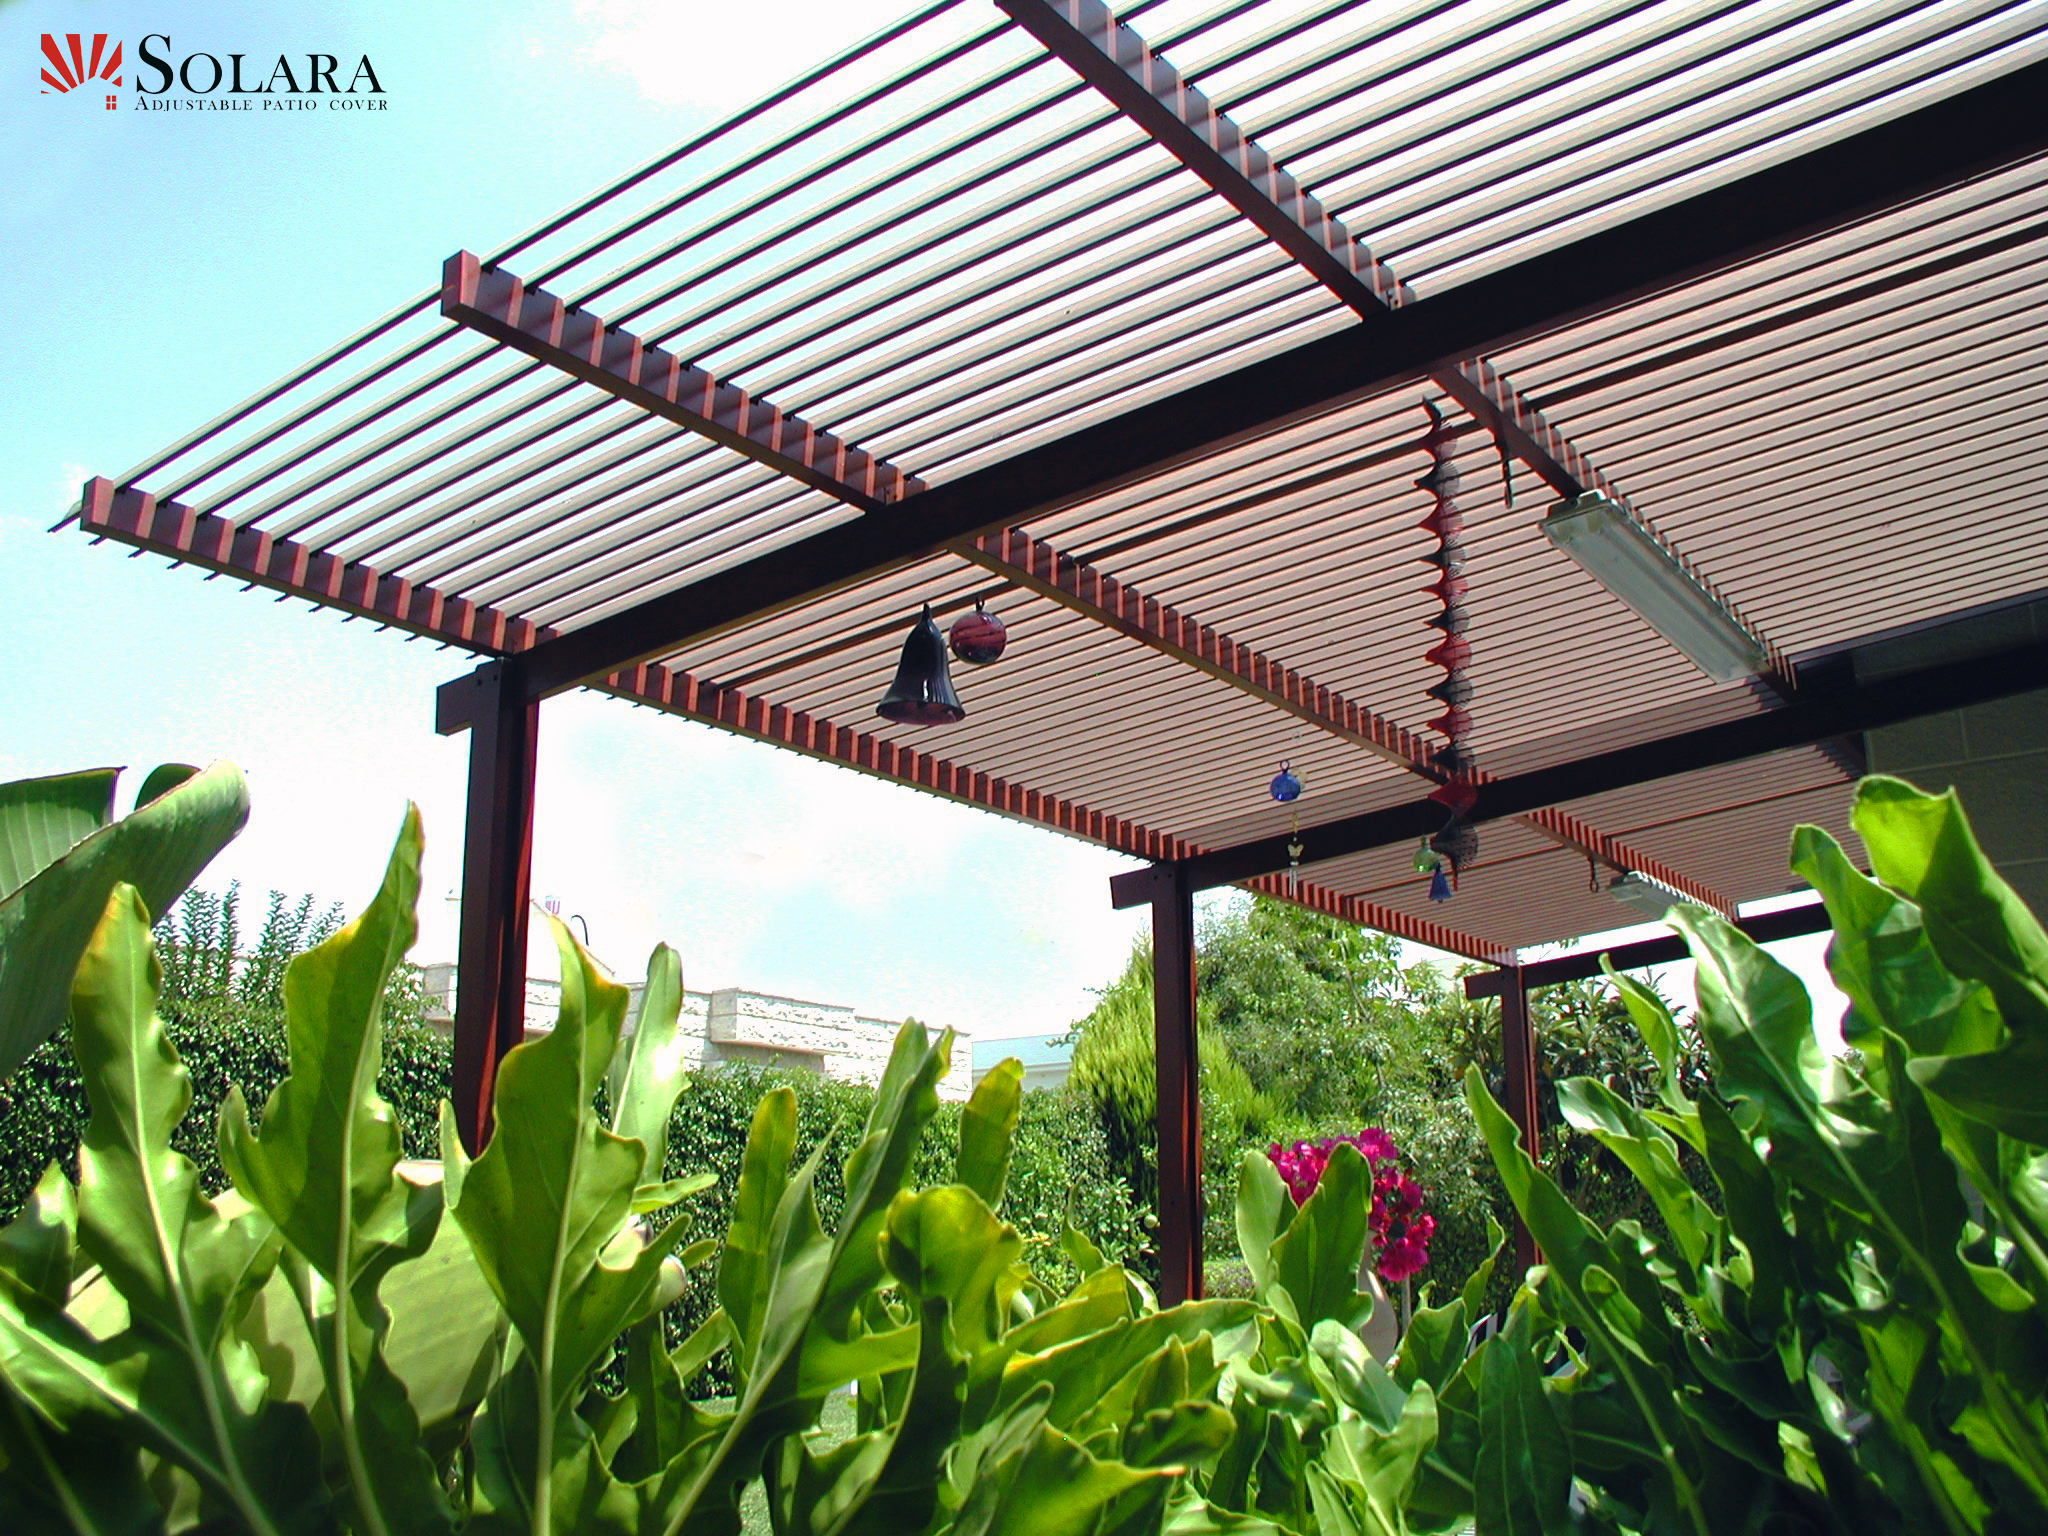 Adjustable-Aluminum-Louvered-Roof-System-is-easy-to-clean.jpg